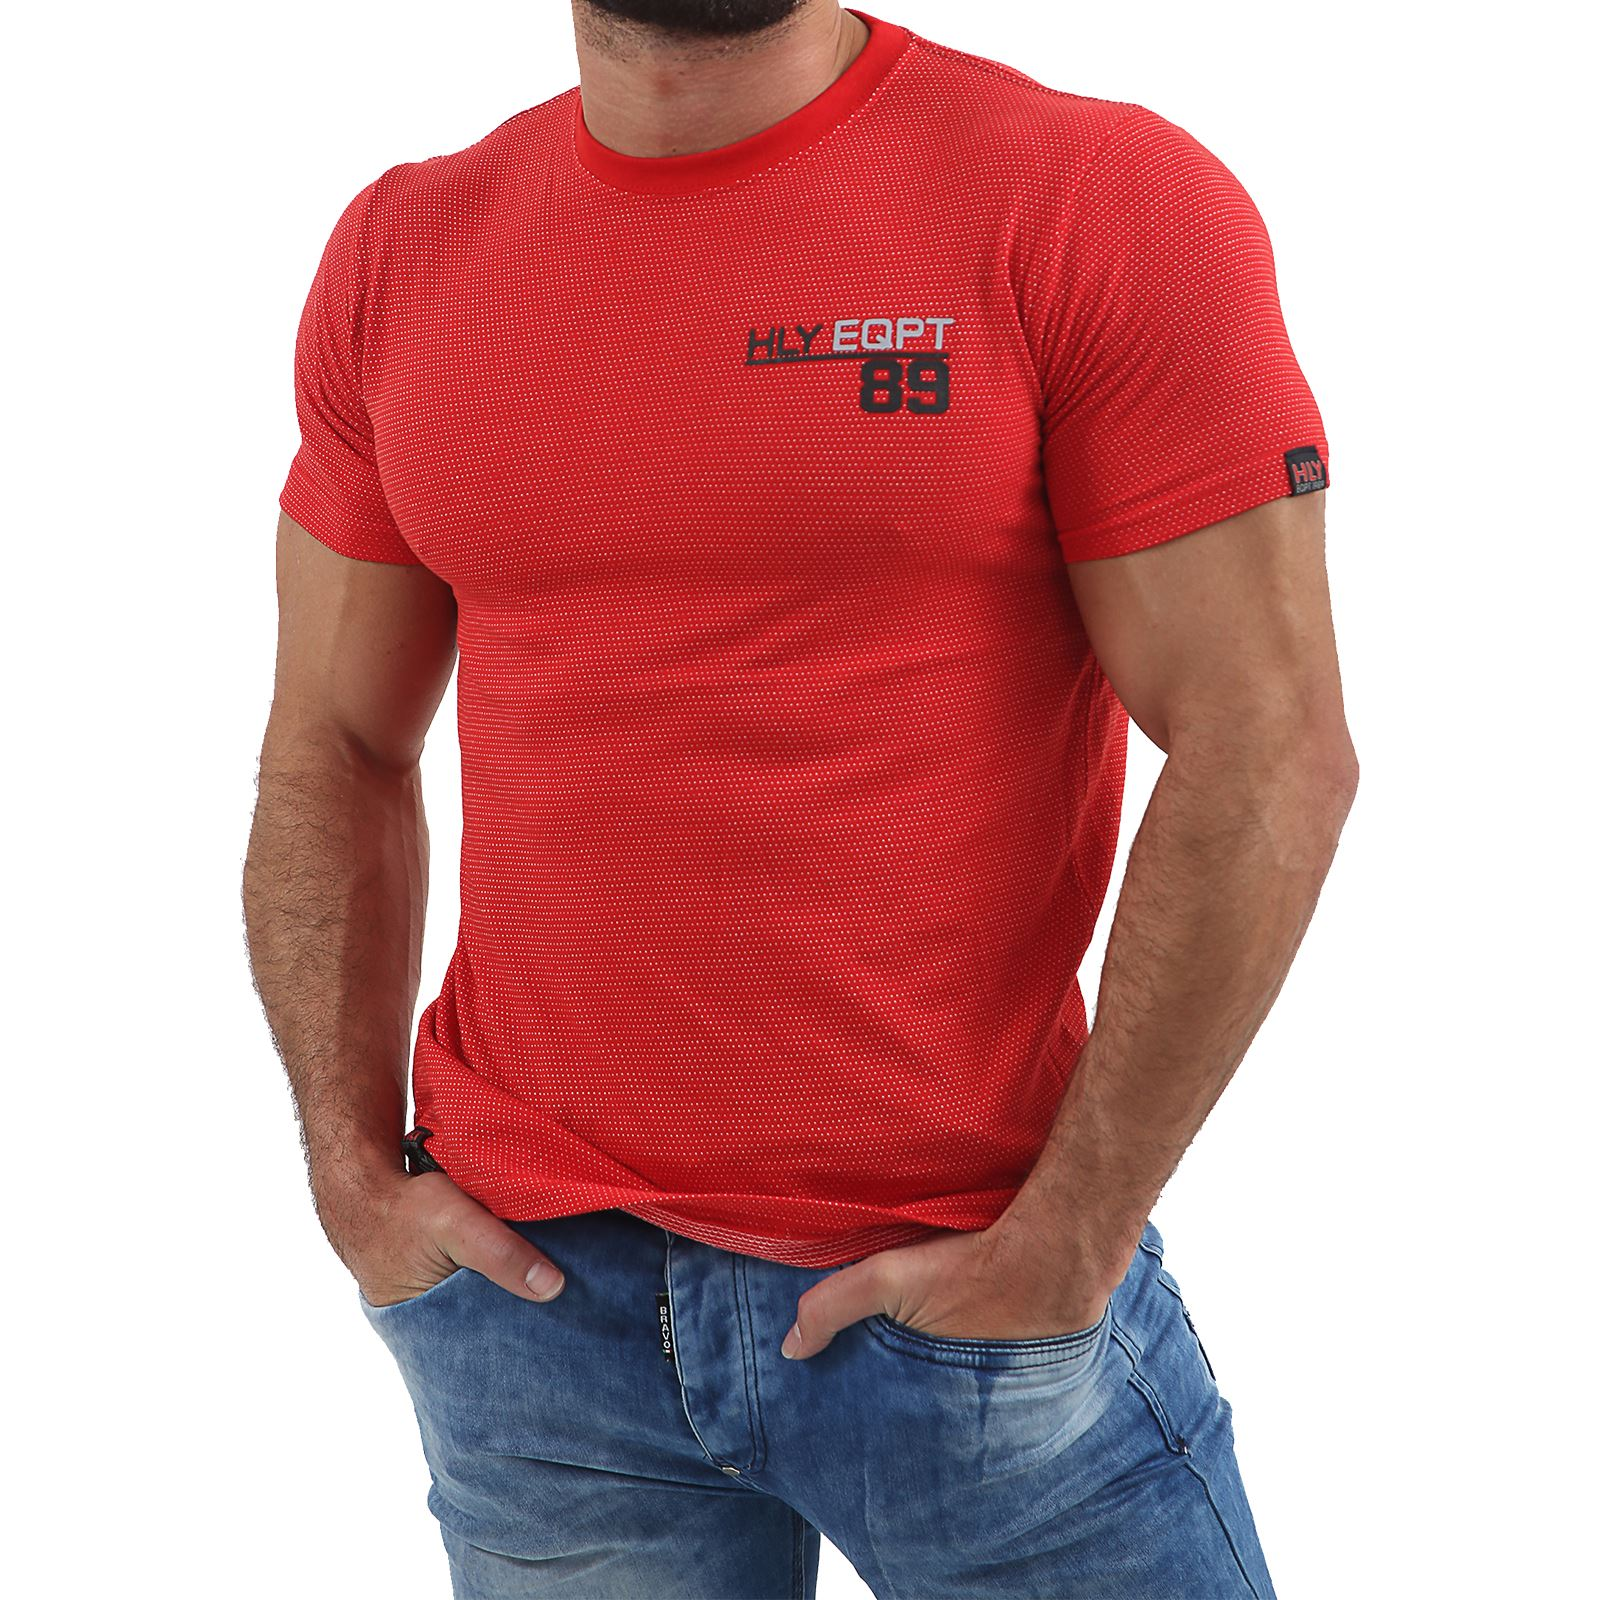 Mens-HLY-EQPT-Printed-T-Shirt-100-Cotton-Gym-Athletic-Training-Tee-Top-Summer thumbnail 42